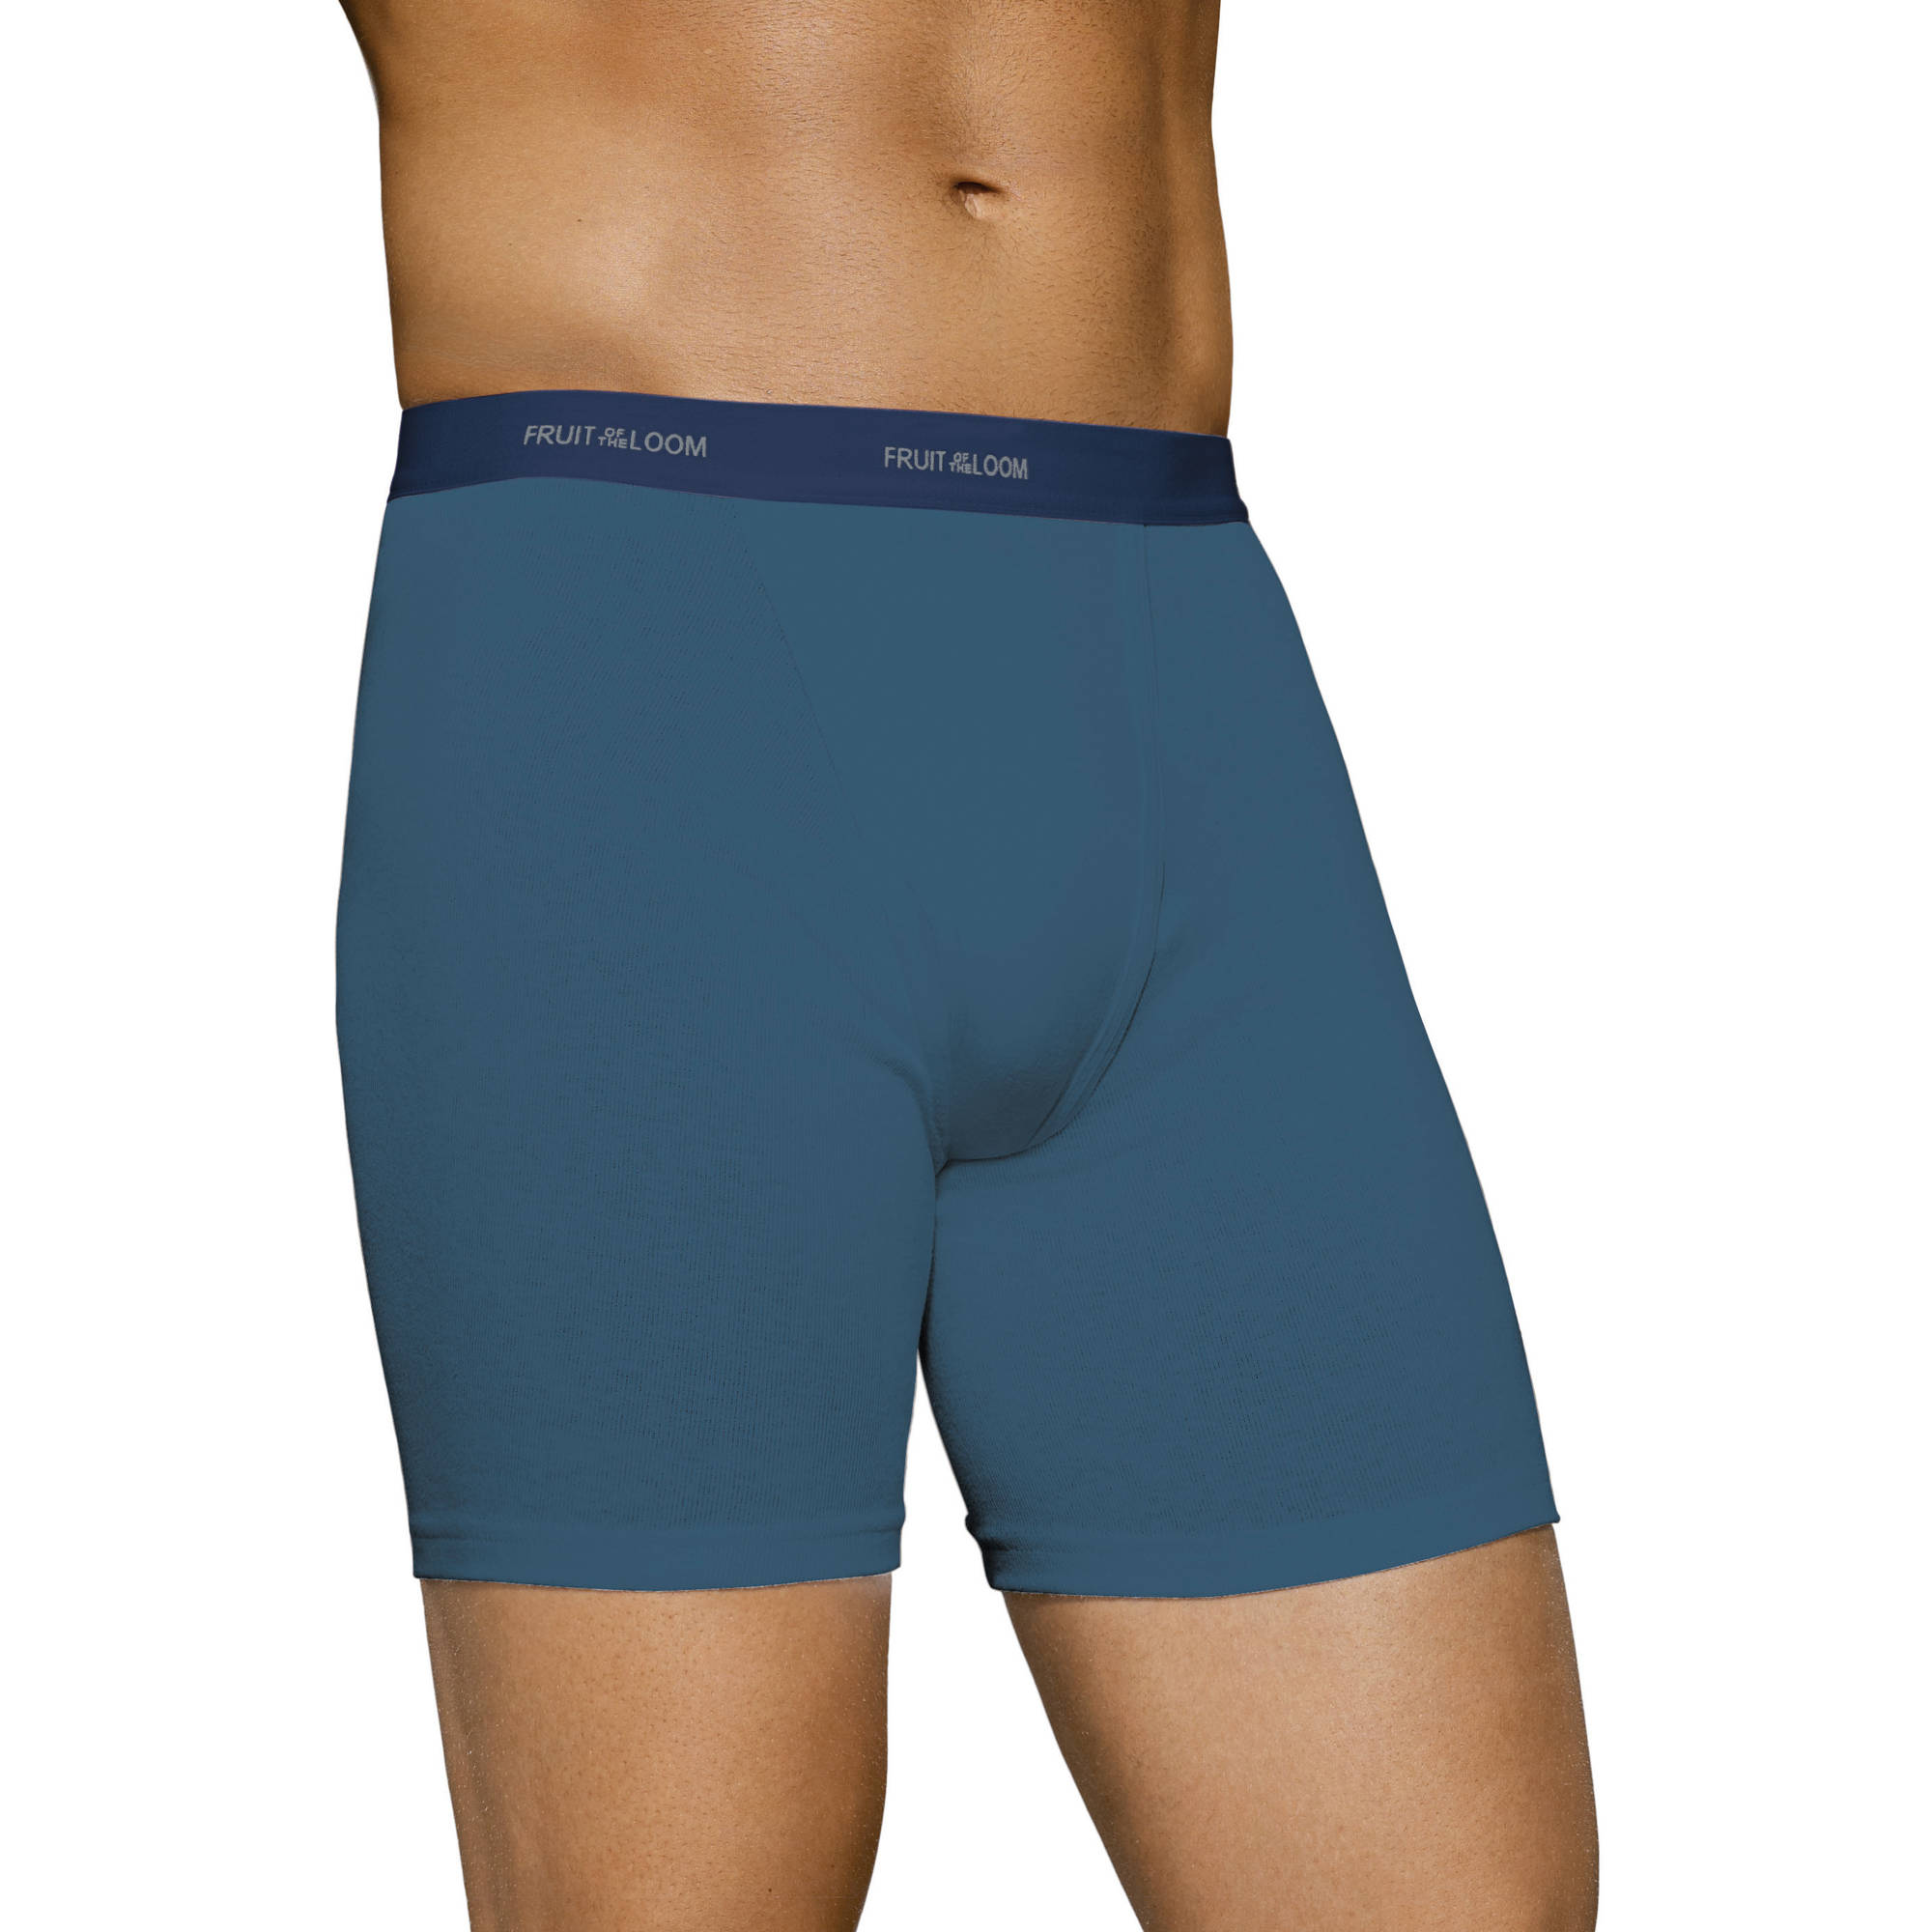 Fruit of the Loom Big Men's Assorted Color Boxer Briefs, 4-pack